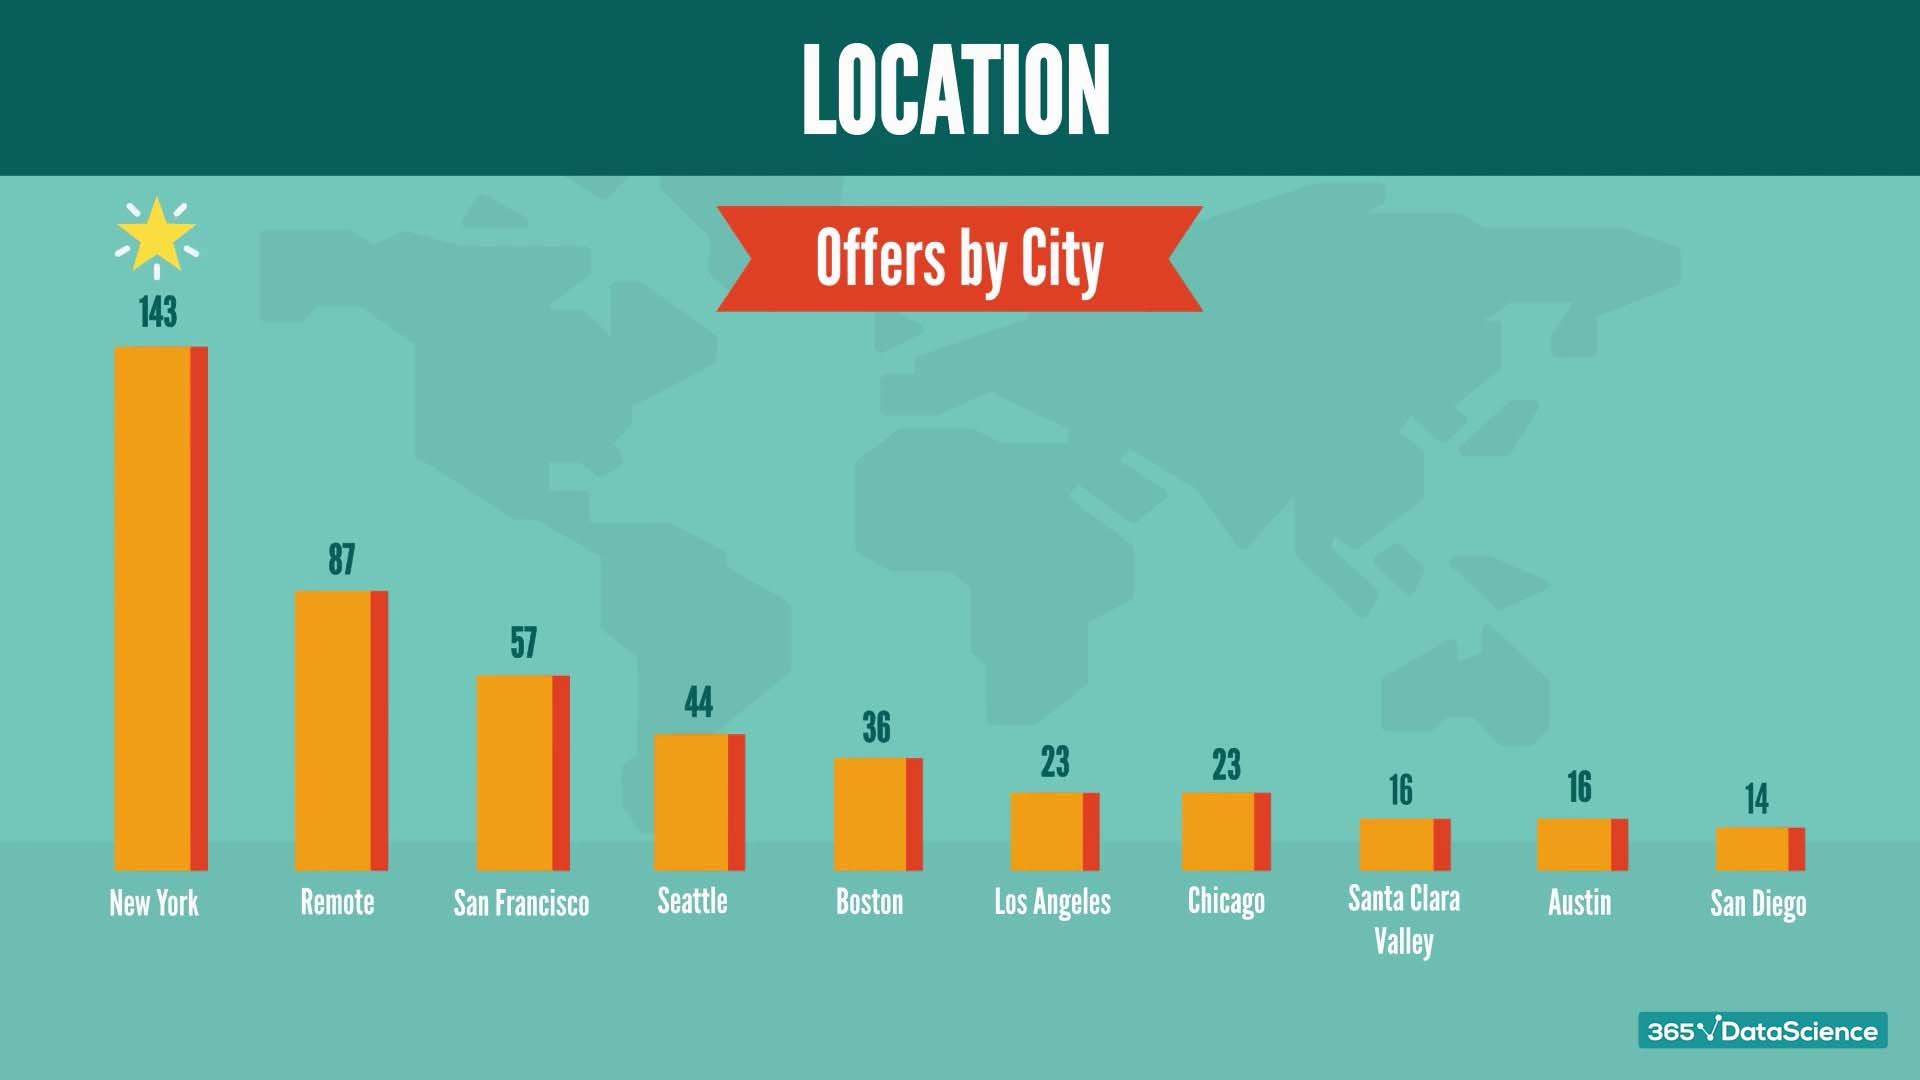 U.S. cities with the highest number of Python job ads